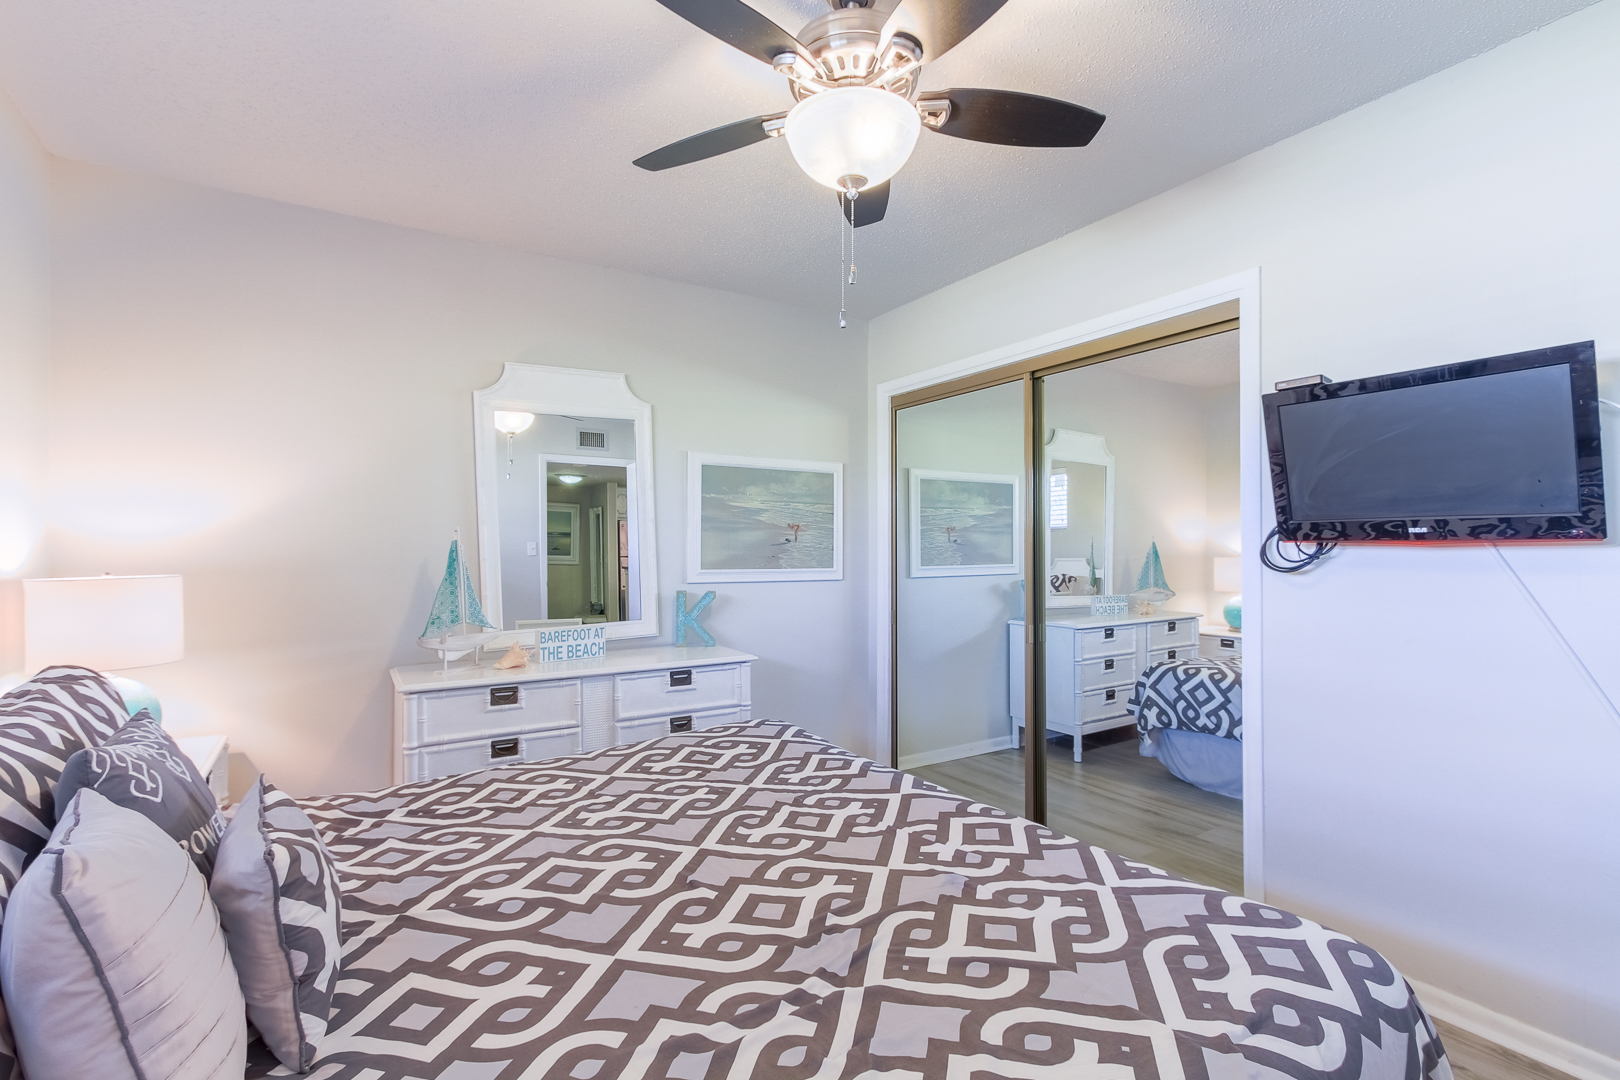 Holiday Surf & Racquet Club 2A Condo rental in Holiday Surf & Racquet Club in Destin Florida - #16